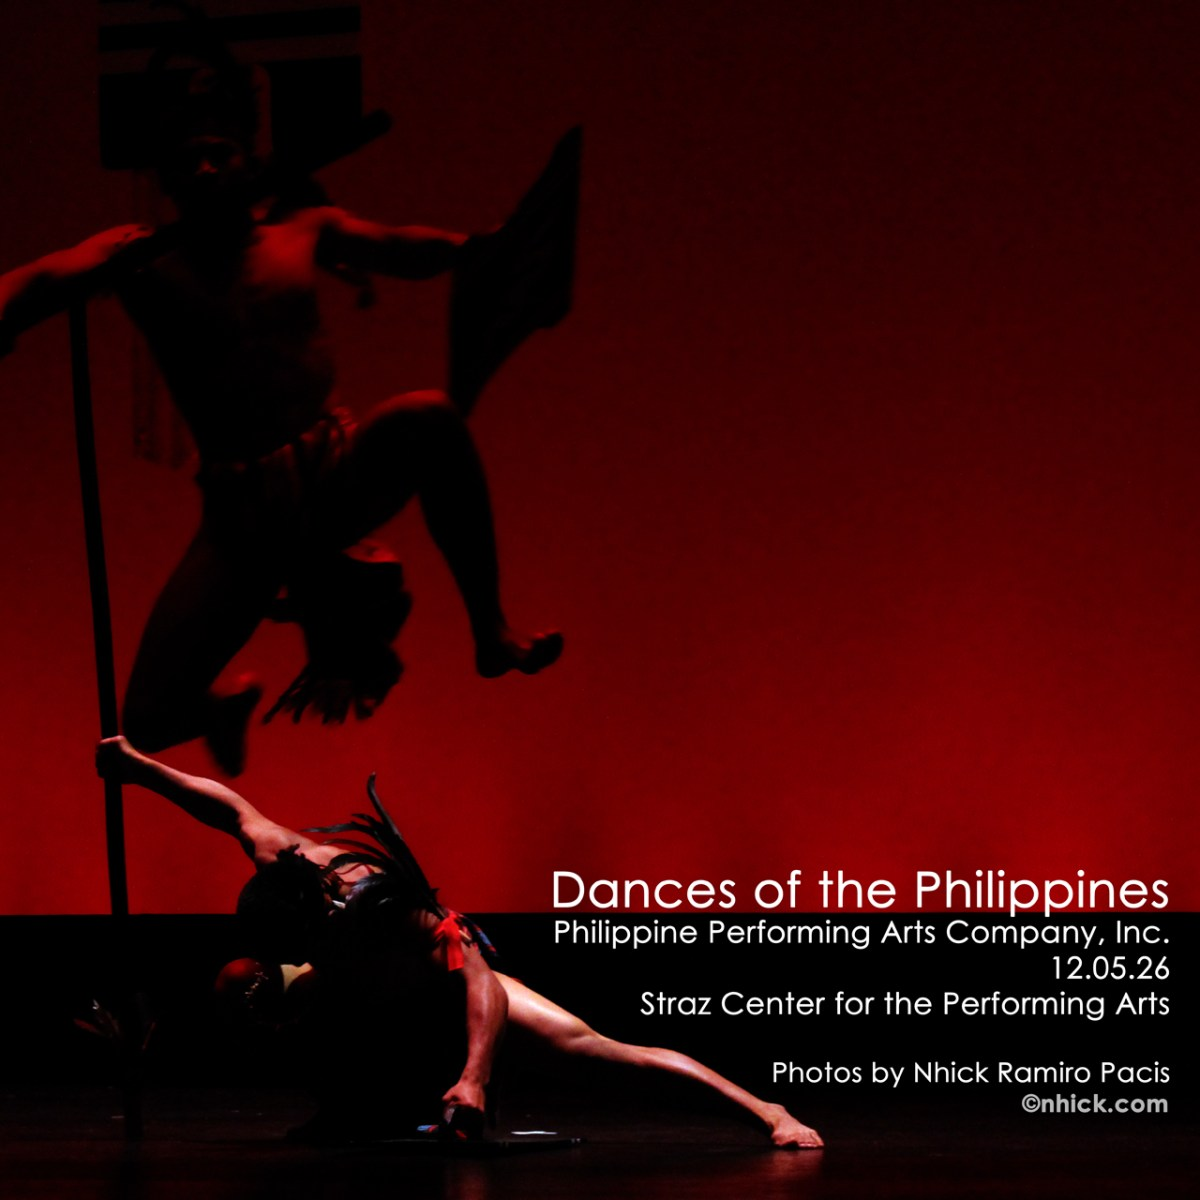 Dances of the Philippines Photos